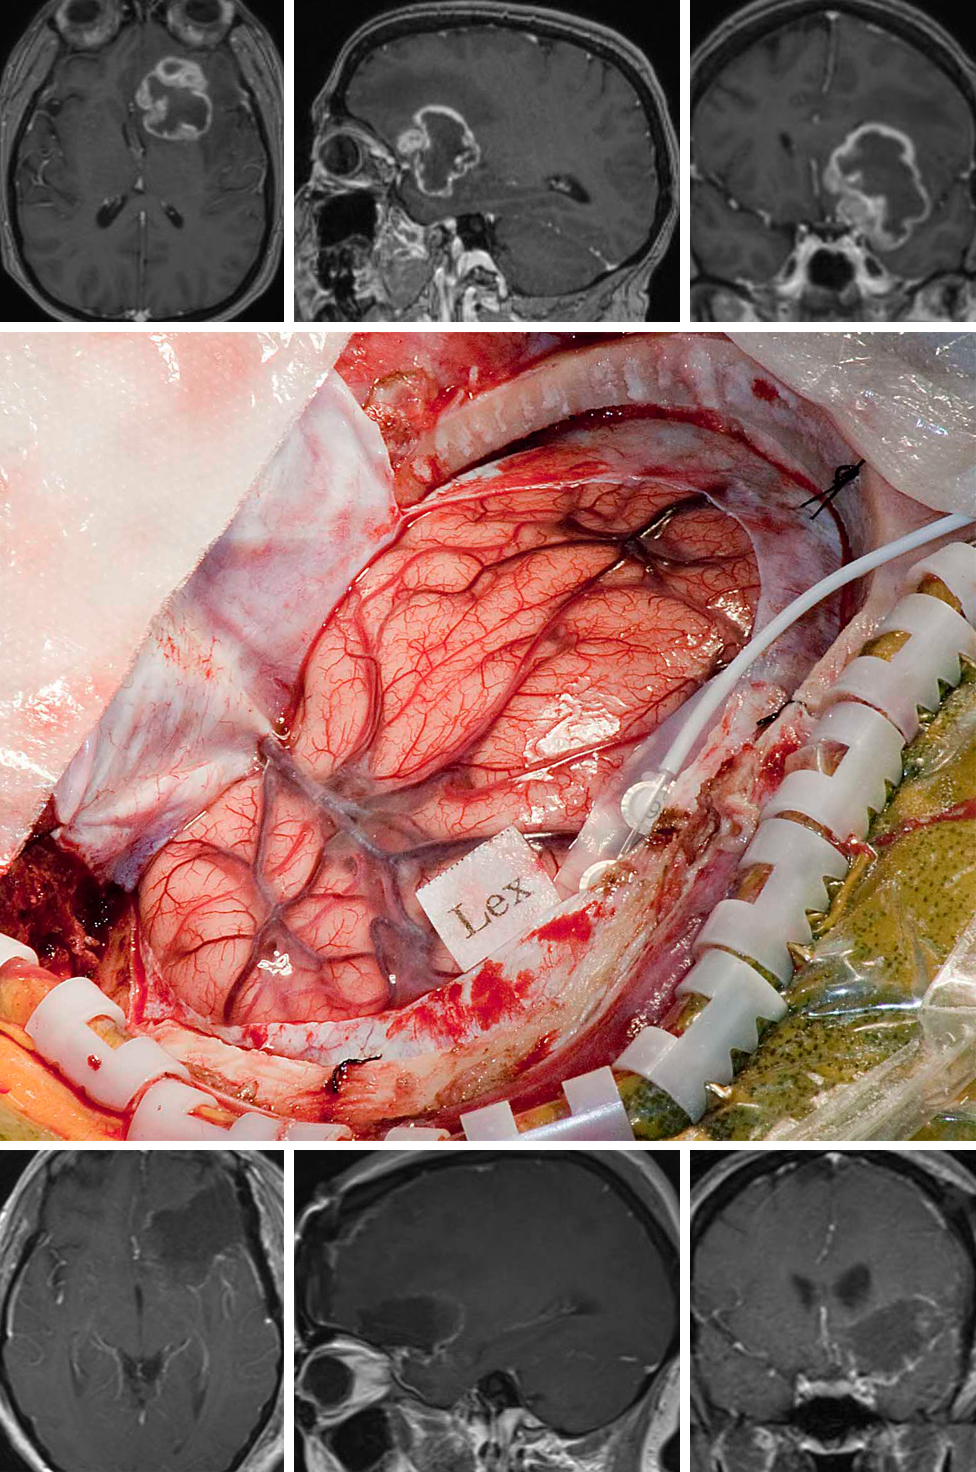 Figure 3: The deep and posteroinferior frontal location of this tumor required awake speech mapping to guide a safe transcerebral corridor to reach the tumor (upper images). Development of a neurologic deficit can blunt or eliminate any survival advantage gained by resection of this high-grade glioma. Following a left-sided craniotomy, the most inferior location of motor speech was mapped (Lex)(middle image) and a corticotomy, just anterior to this eloquent cortex, was made to reach the tumor. Ultimately, gross total resection of the tumor was performed safely (lower images).